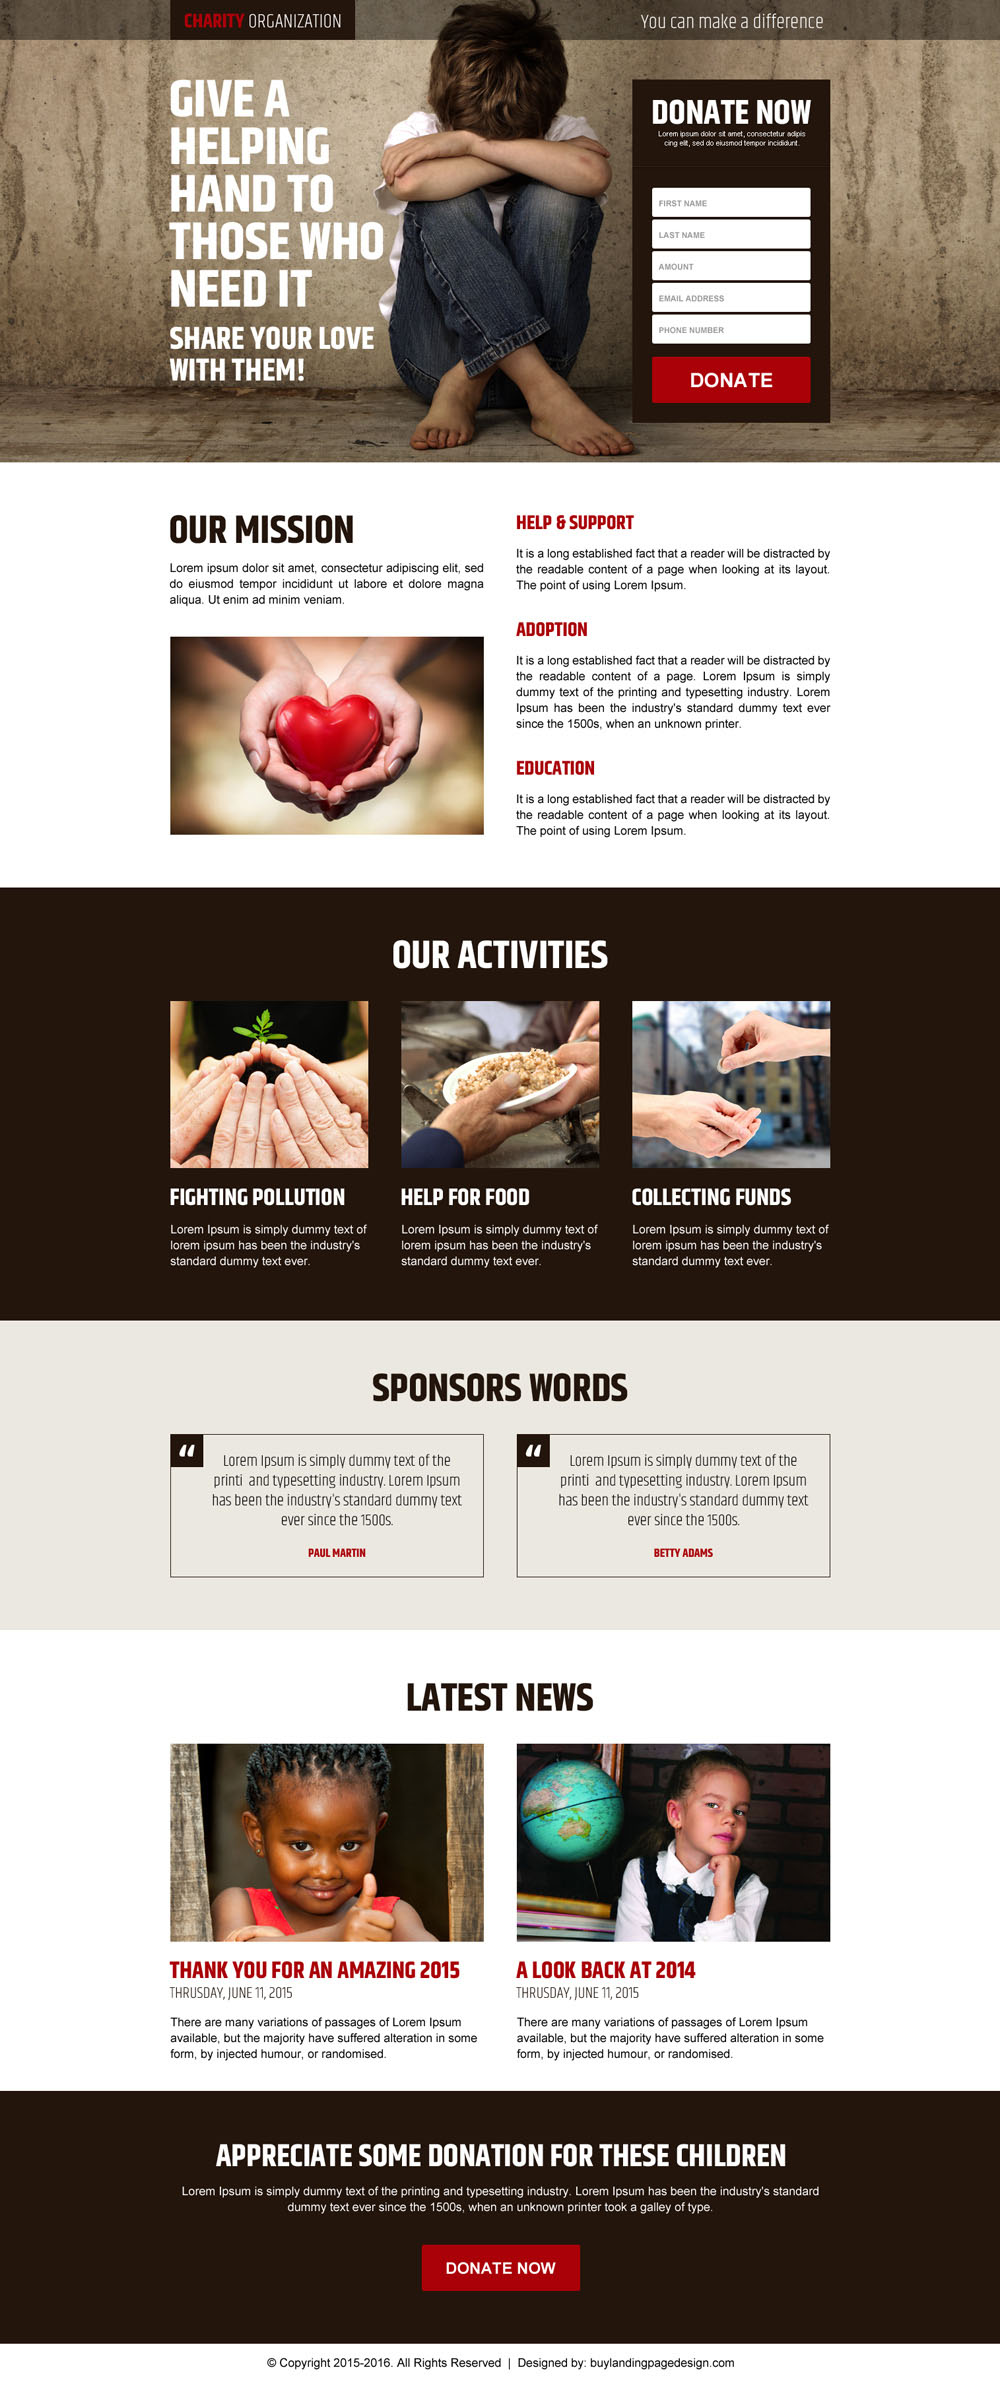 charity-organization-landing-page-design-templates-to-capture-leads-001